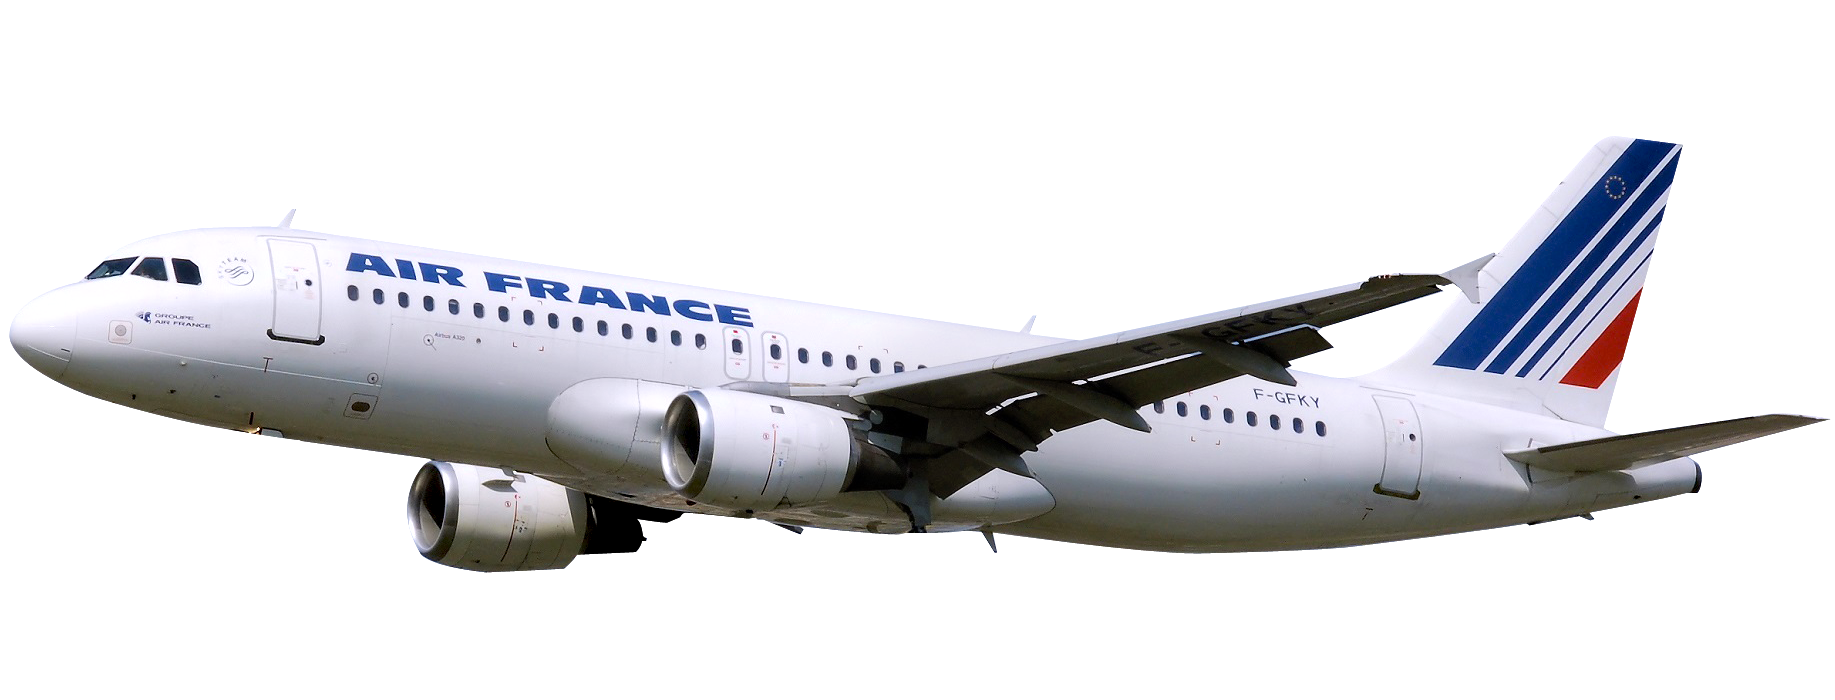 PNG HD Airplane - 148155